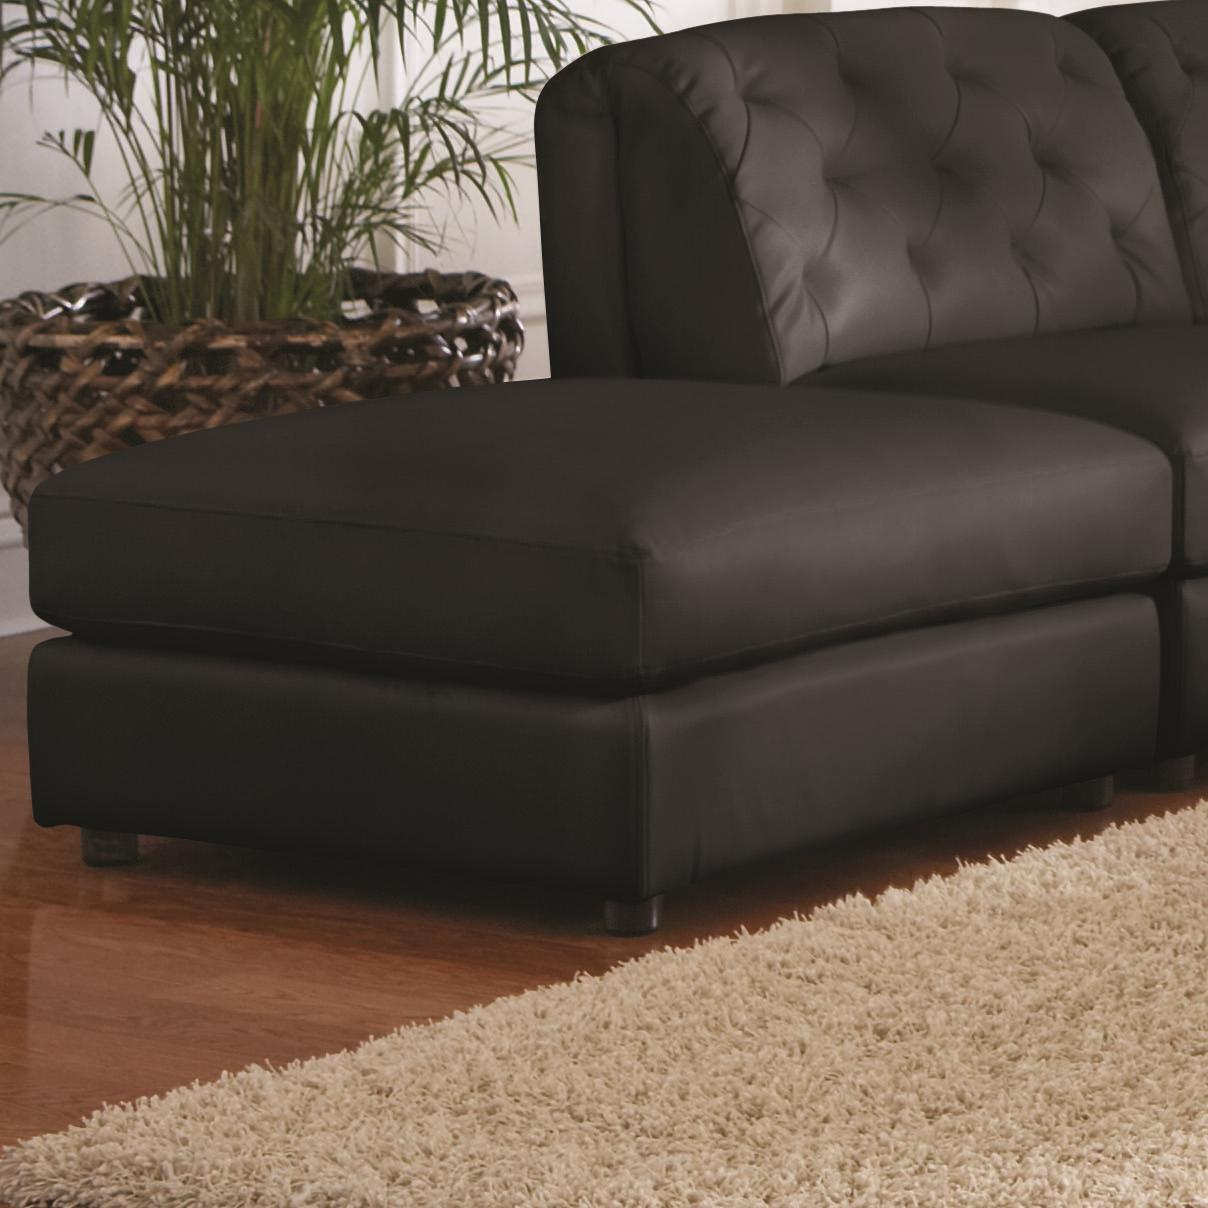 Coaster Quinn Storage Ottoman - Item Number: 551033